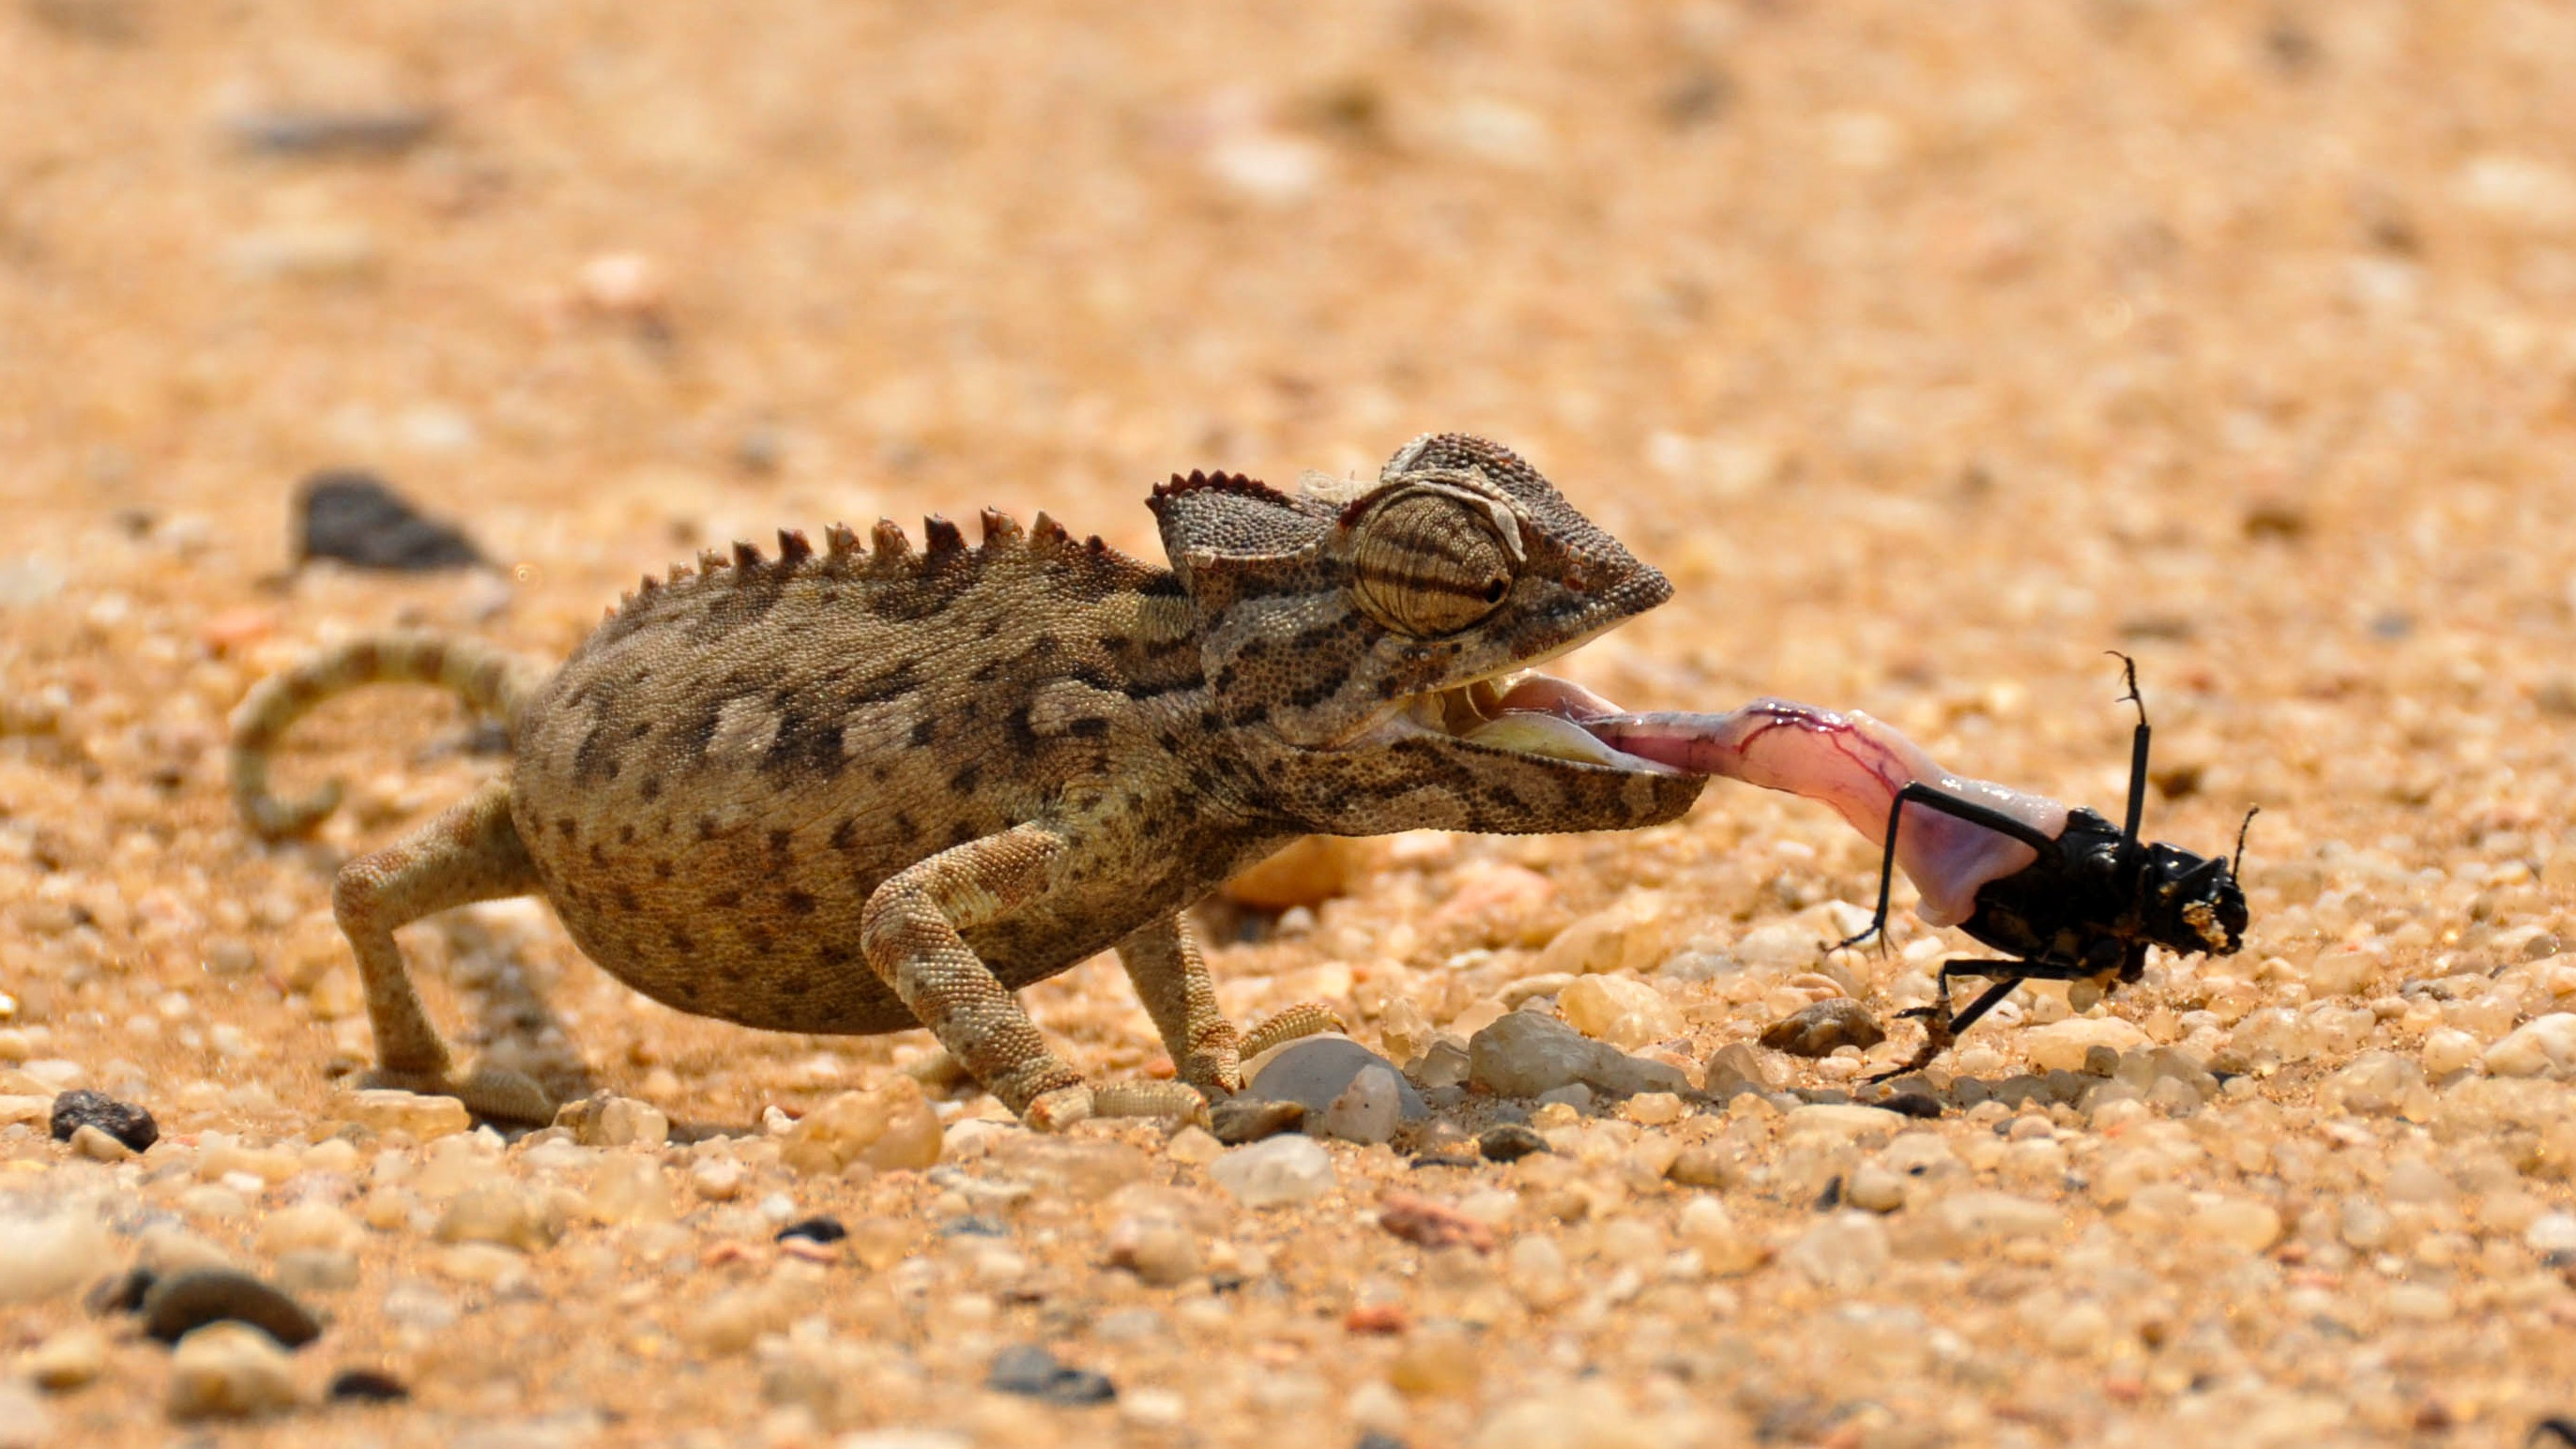 lizard eating insect